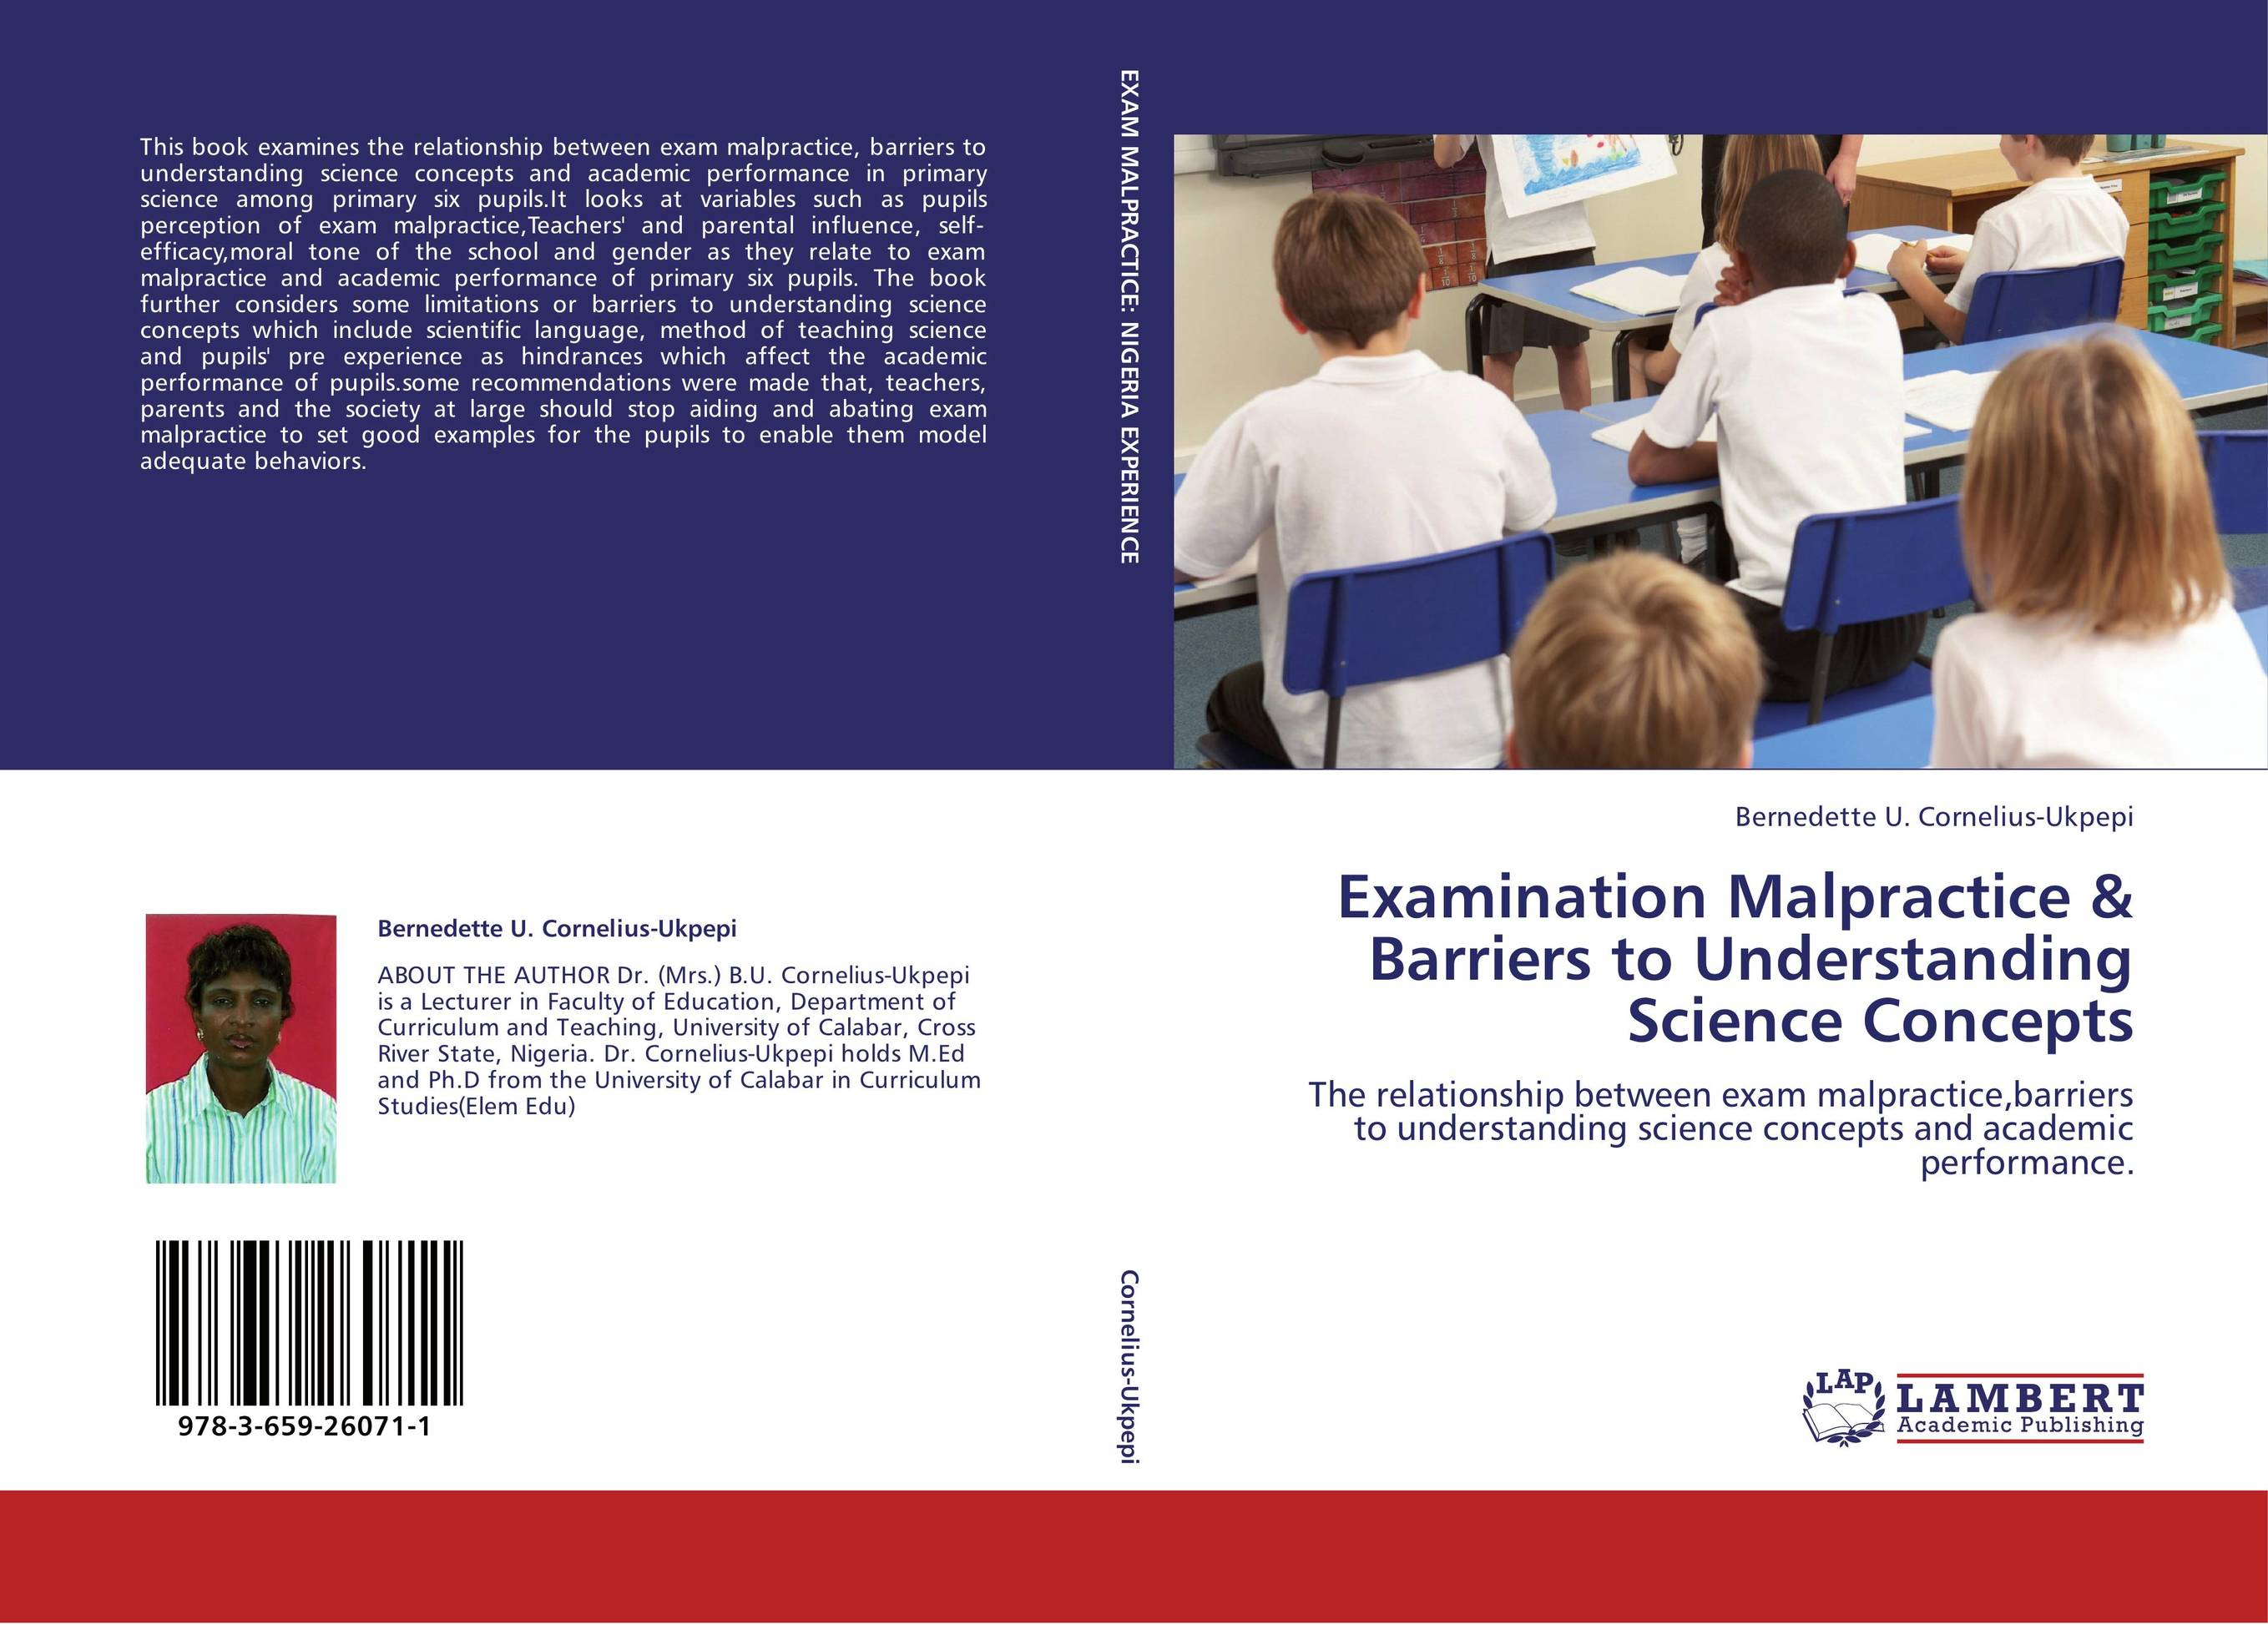 concept of examination malpractice essay Definition of examination: in general, non-destructive inspection, investigation, or testing of materials, products, or services to determine their conformation to specifications or.